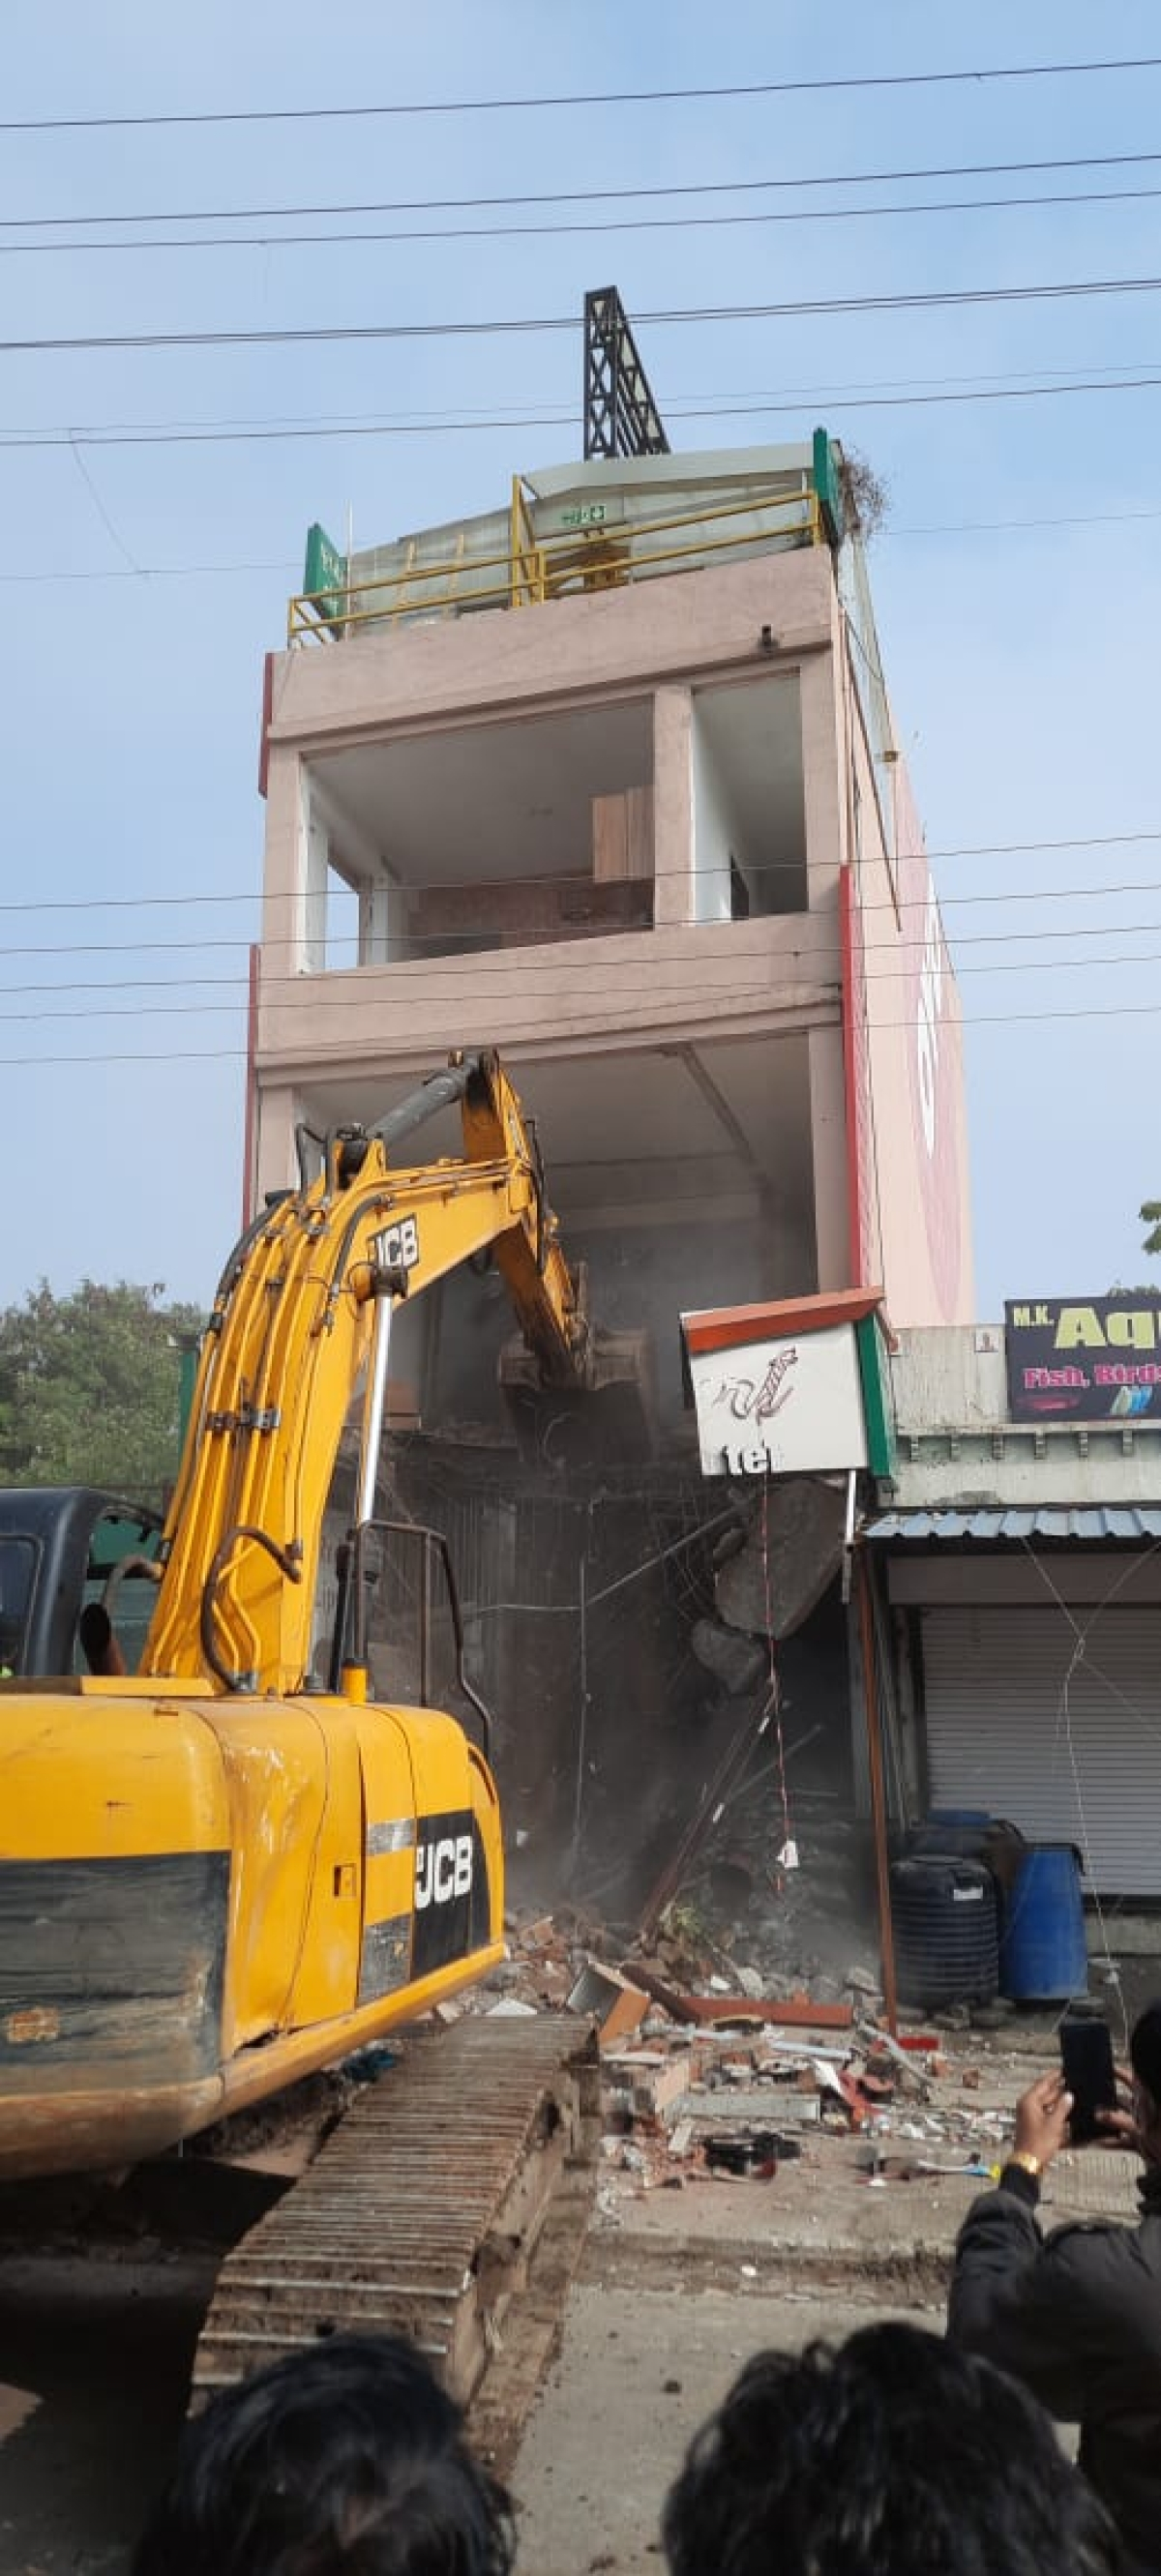 Sweetheart hotel was demolished in Indore on Sunday